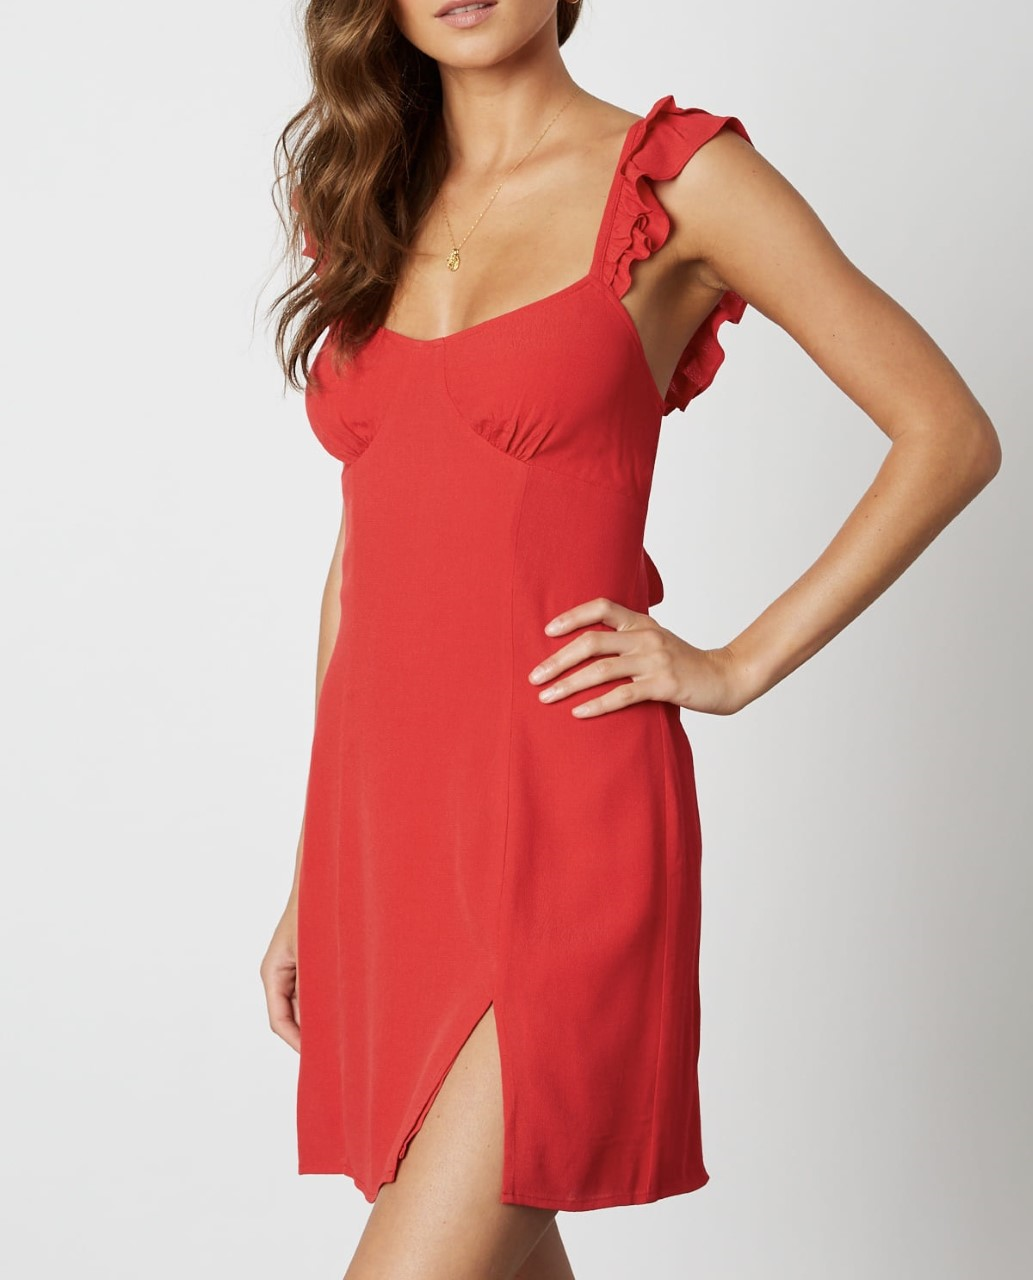 Ruffle Strap Tie Back Slit Mini Dress